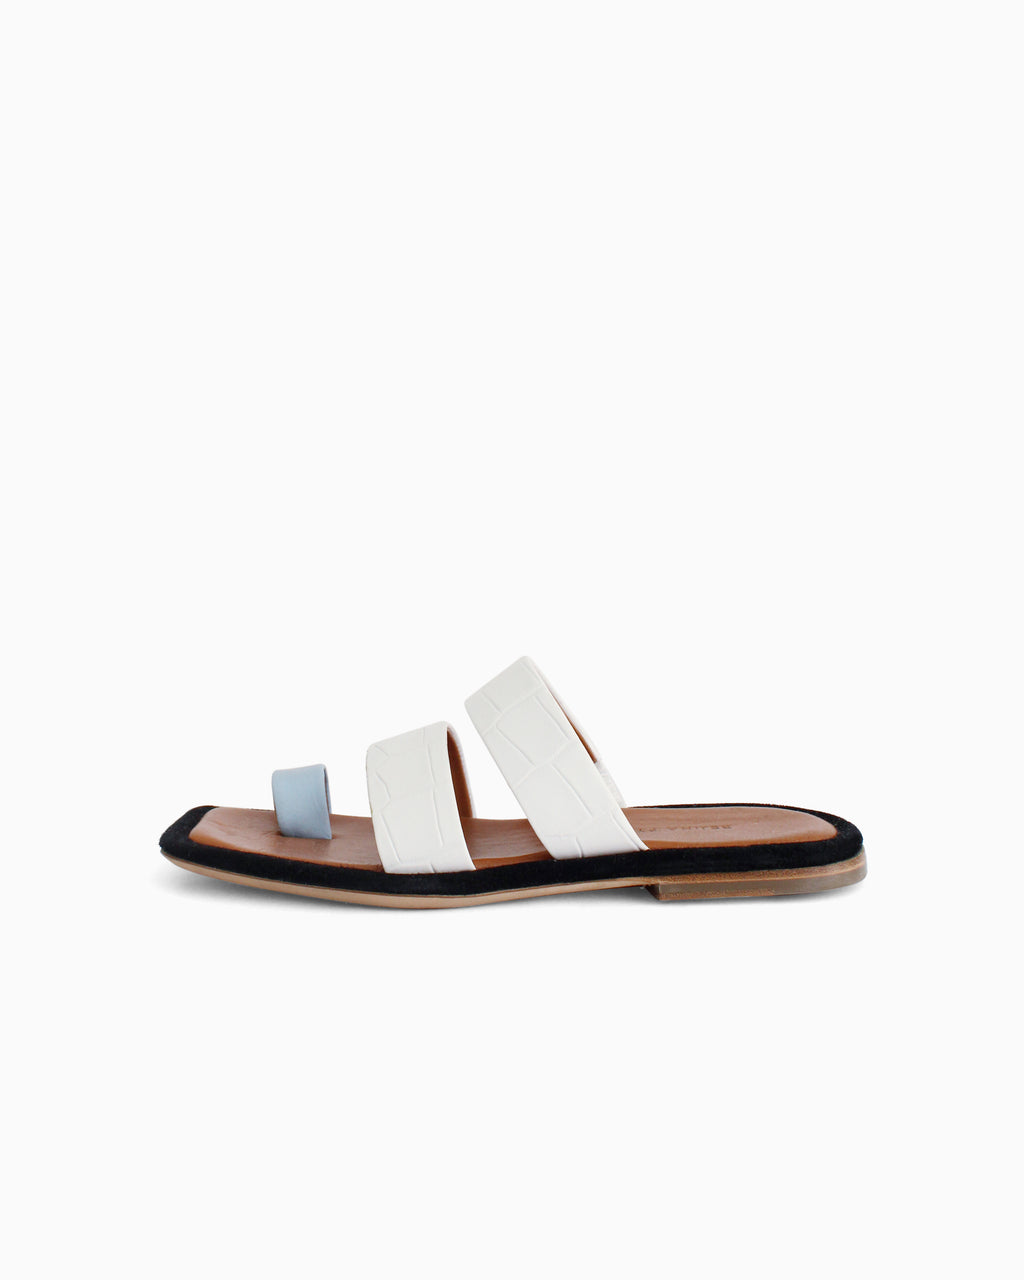 Larissa Sandals Leather Croc White Blue